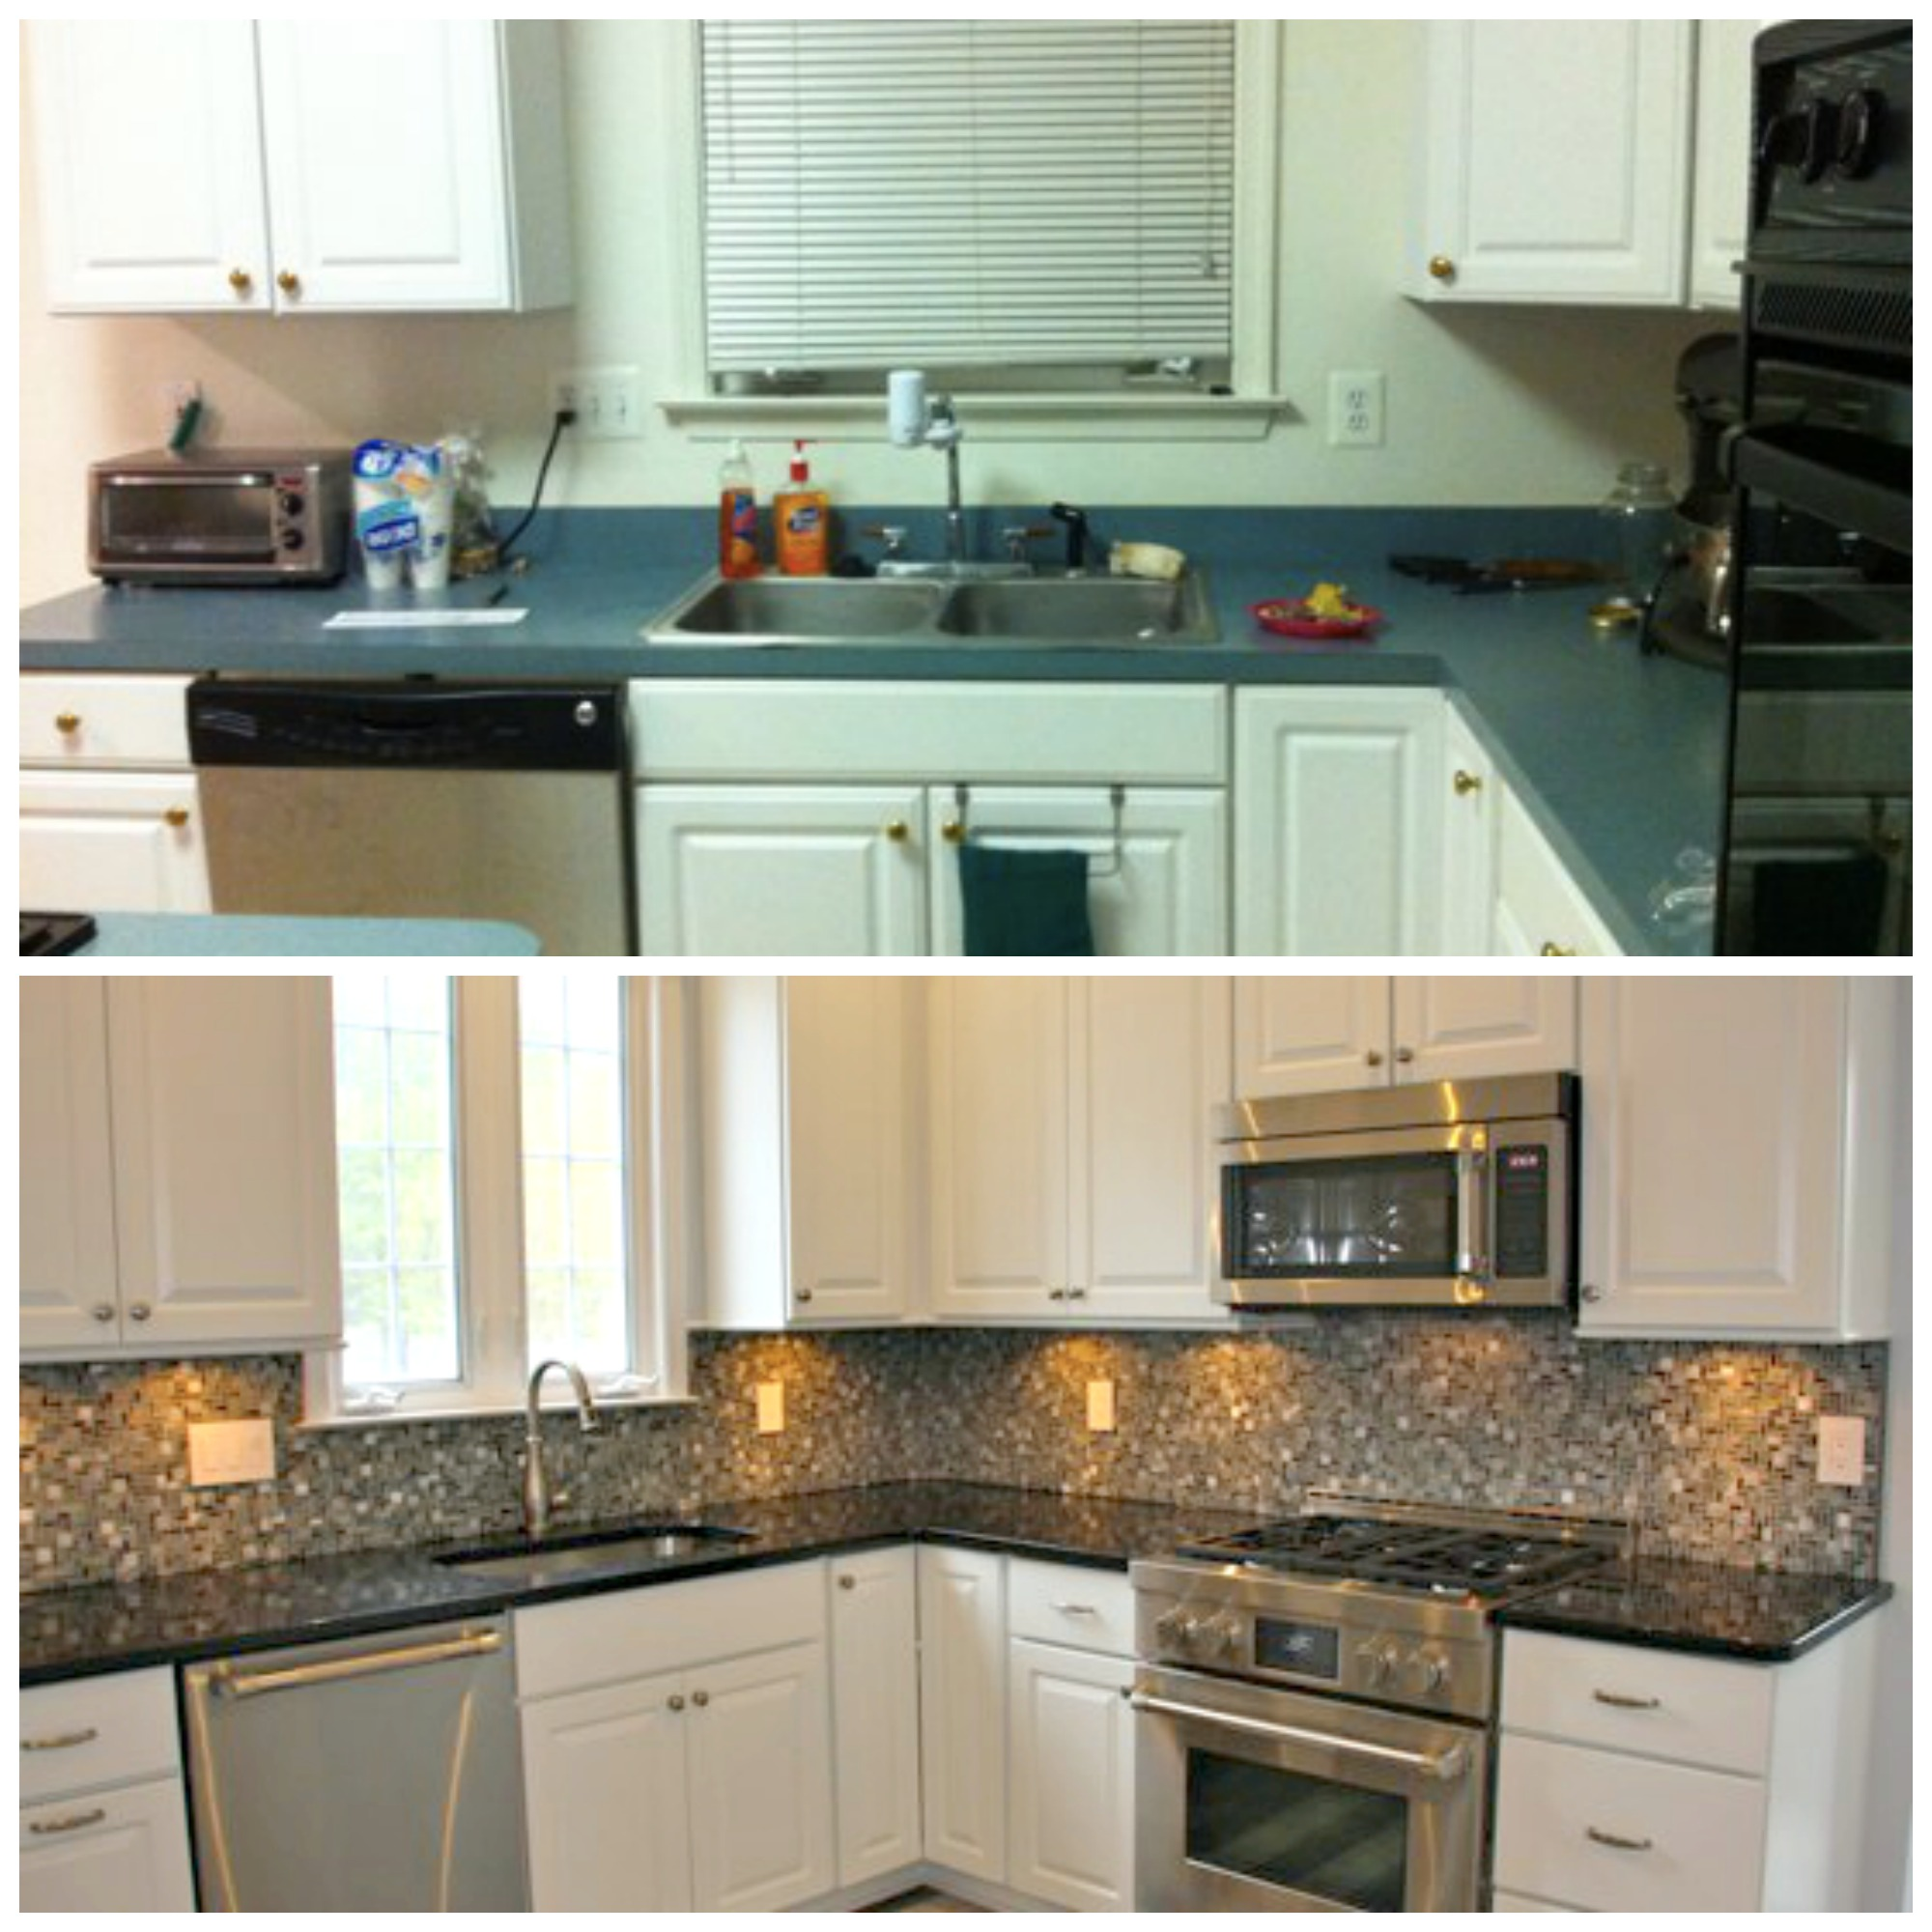 Kitchen Renovation Youtube: The Happy Housewife™ :: Home Management